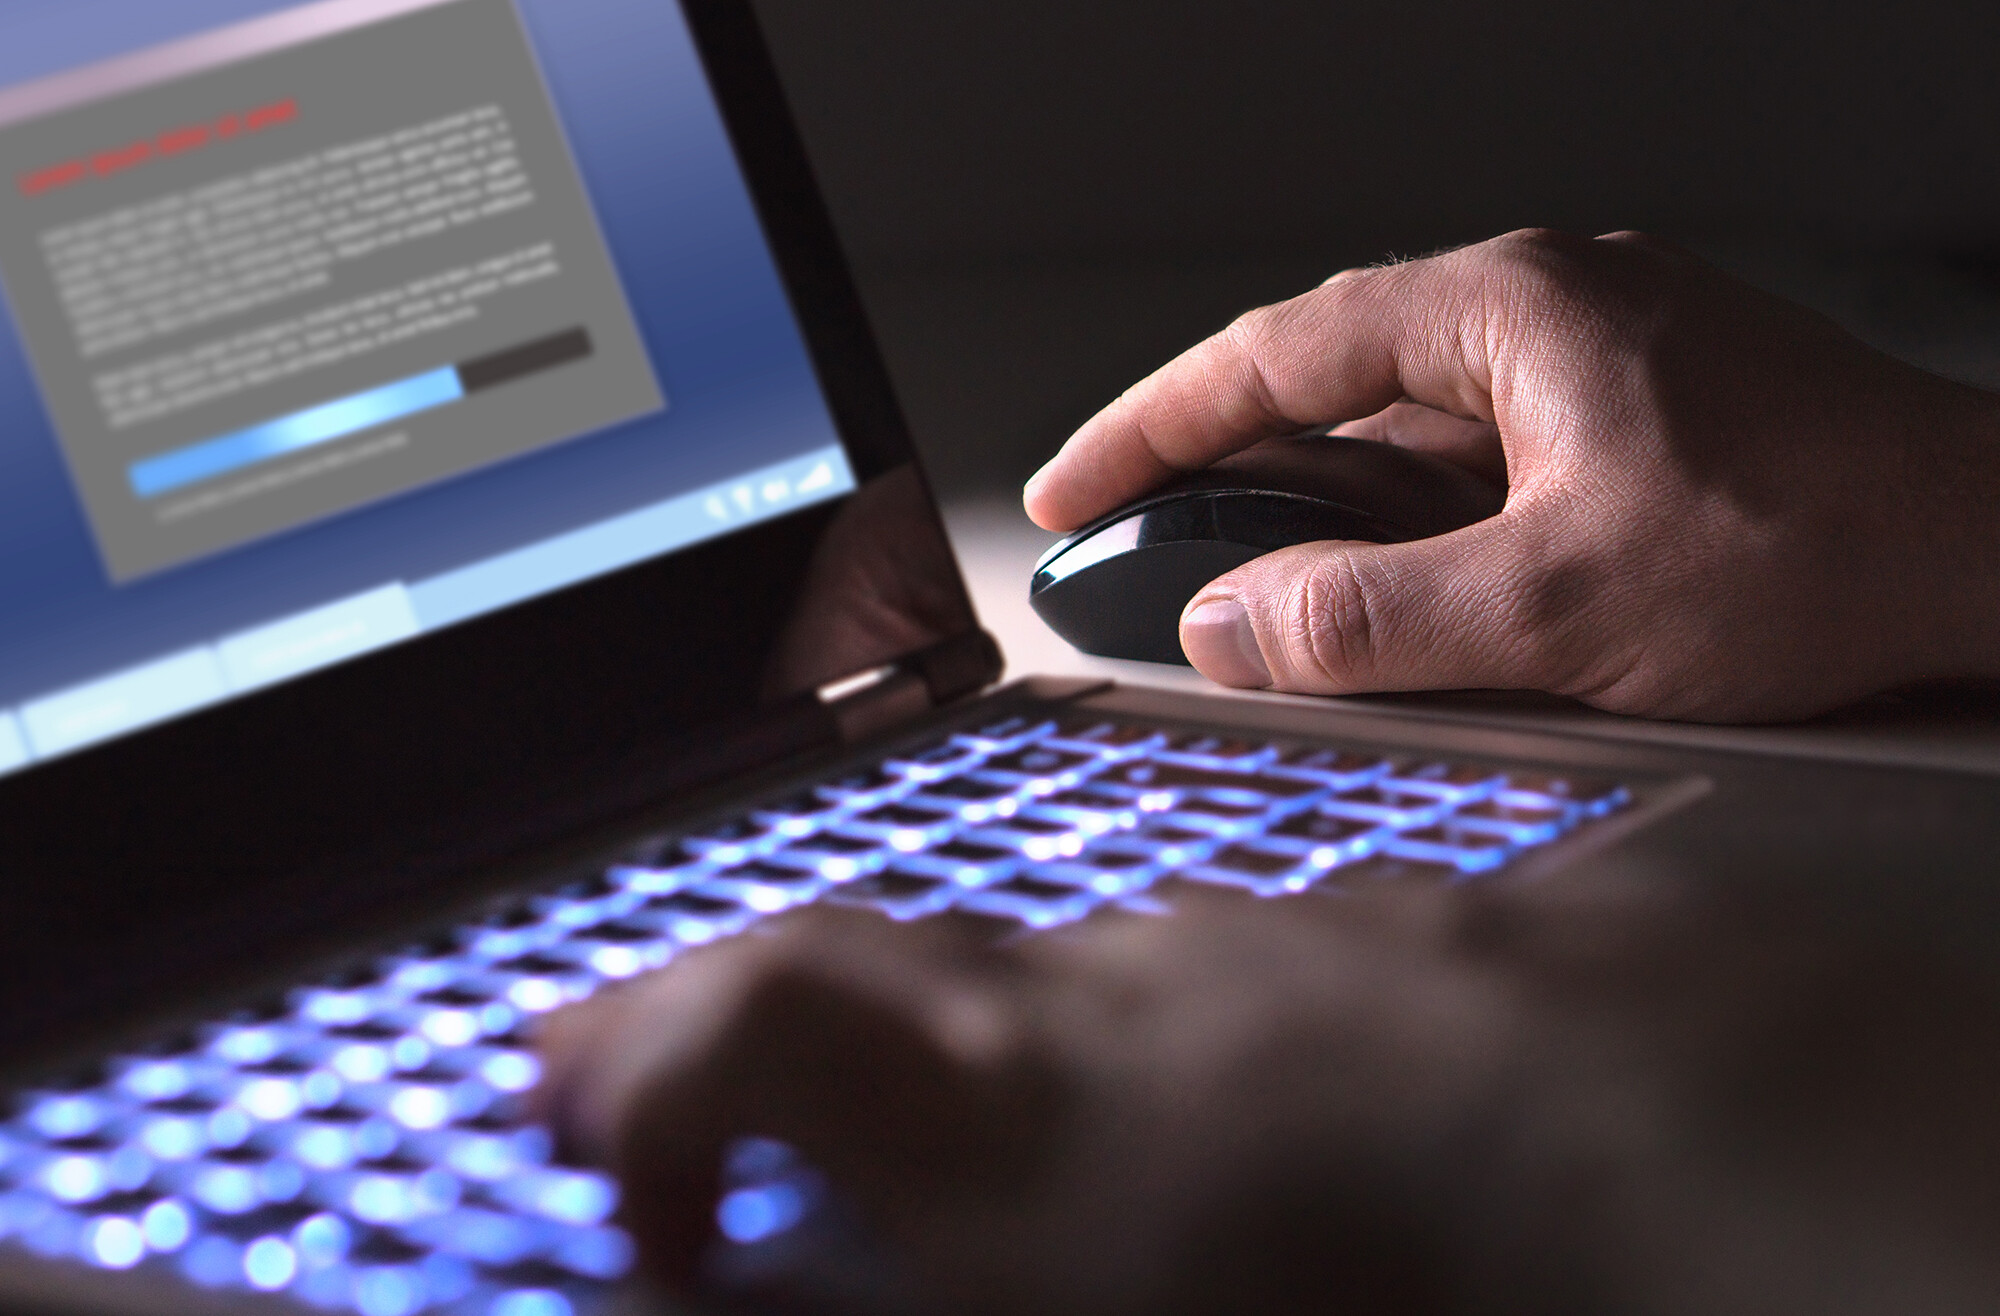 Systemic cybersecurity failures persist across federal agencies, Senate report finds